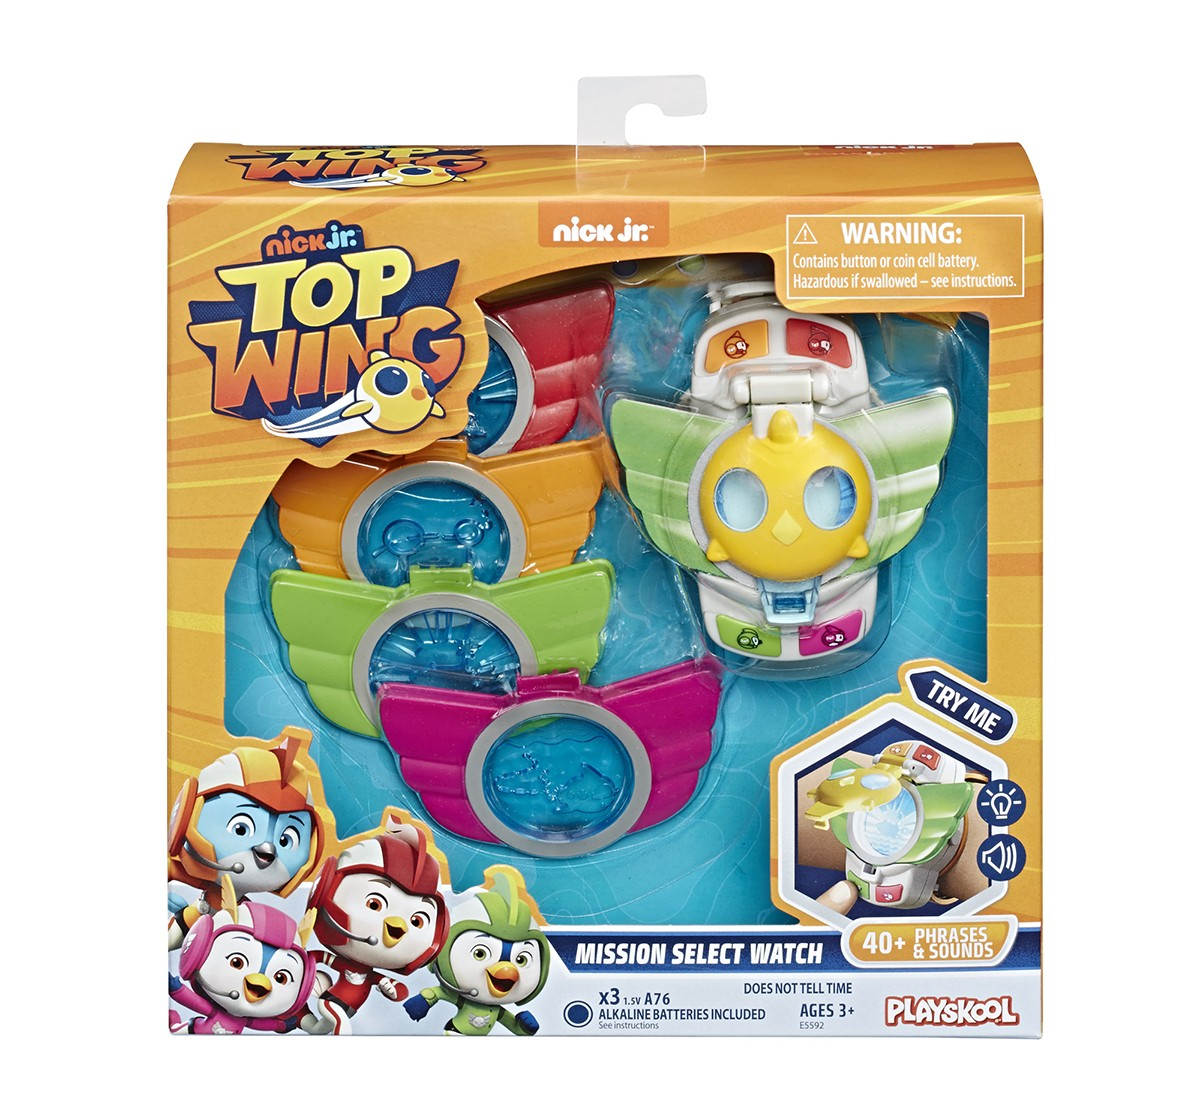 Playskool Top Wing Mission Select Watch With 40+ Lights, Sounds, And Badges Activity Toys for Kids age 3Y+